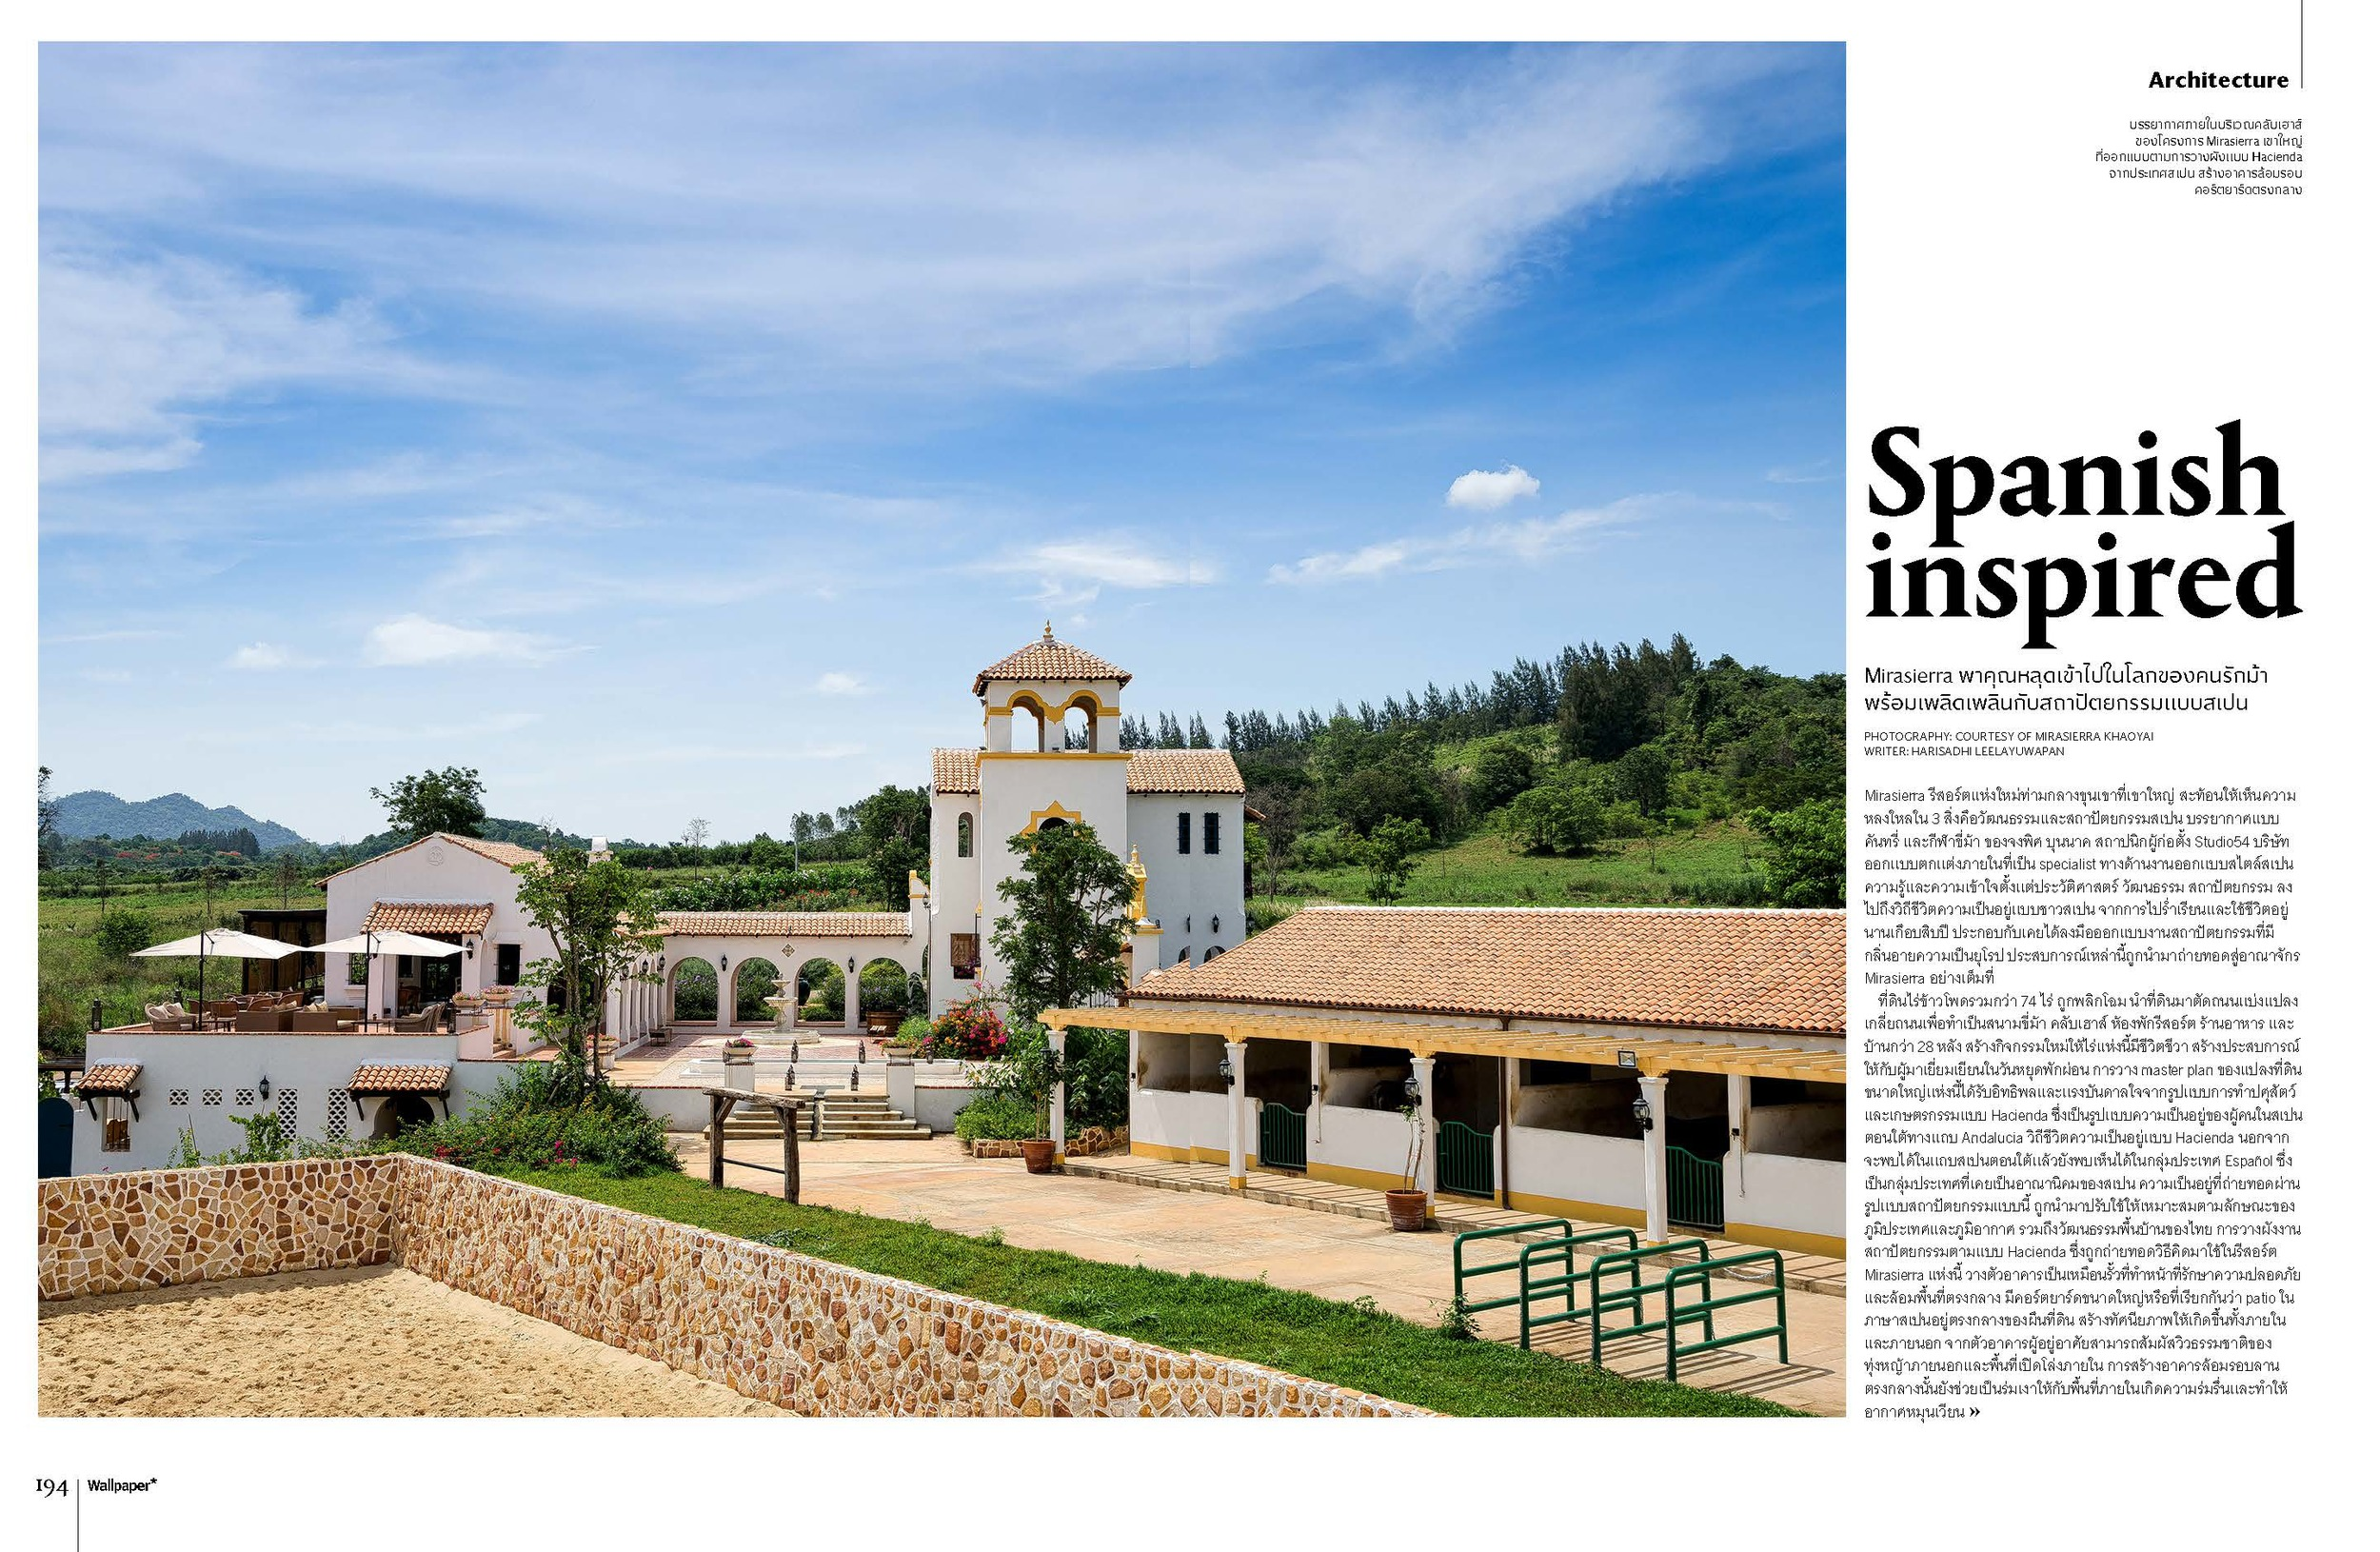 P194-196 Architecture-Spanish inspired-2_Page_1.jpg